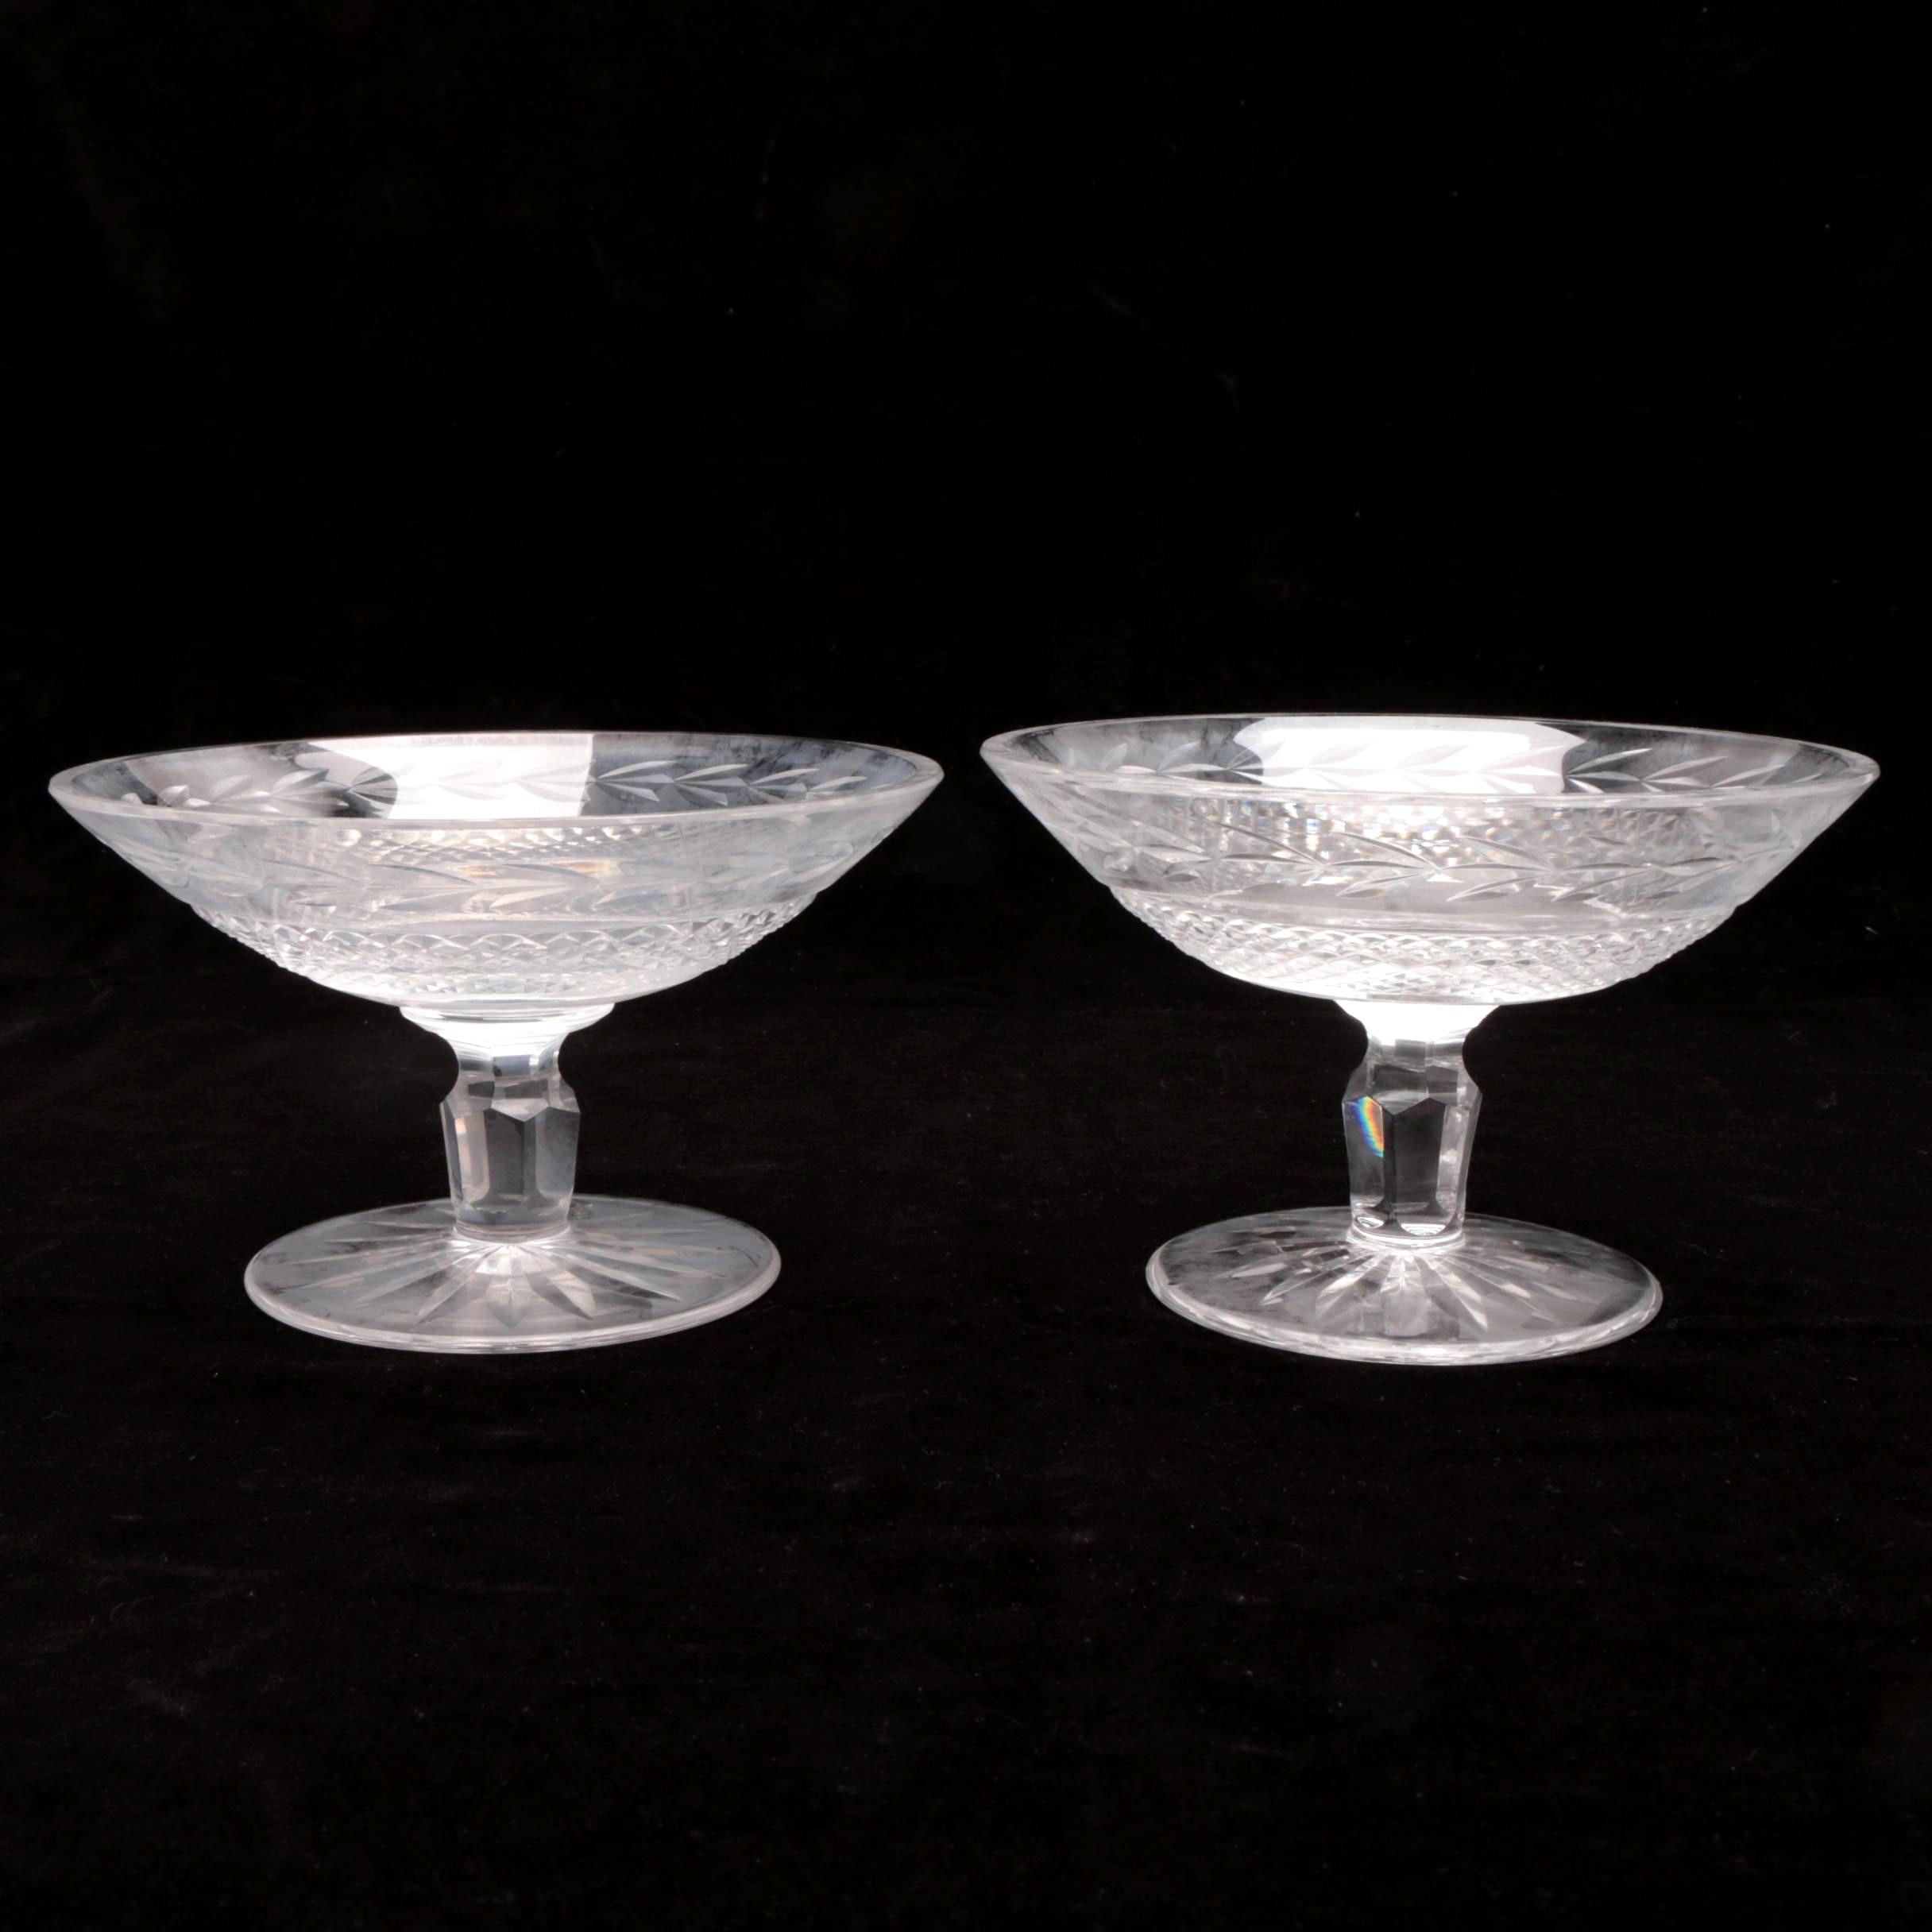 Waterford Crystal Compotes